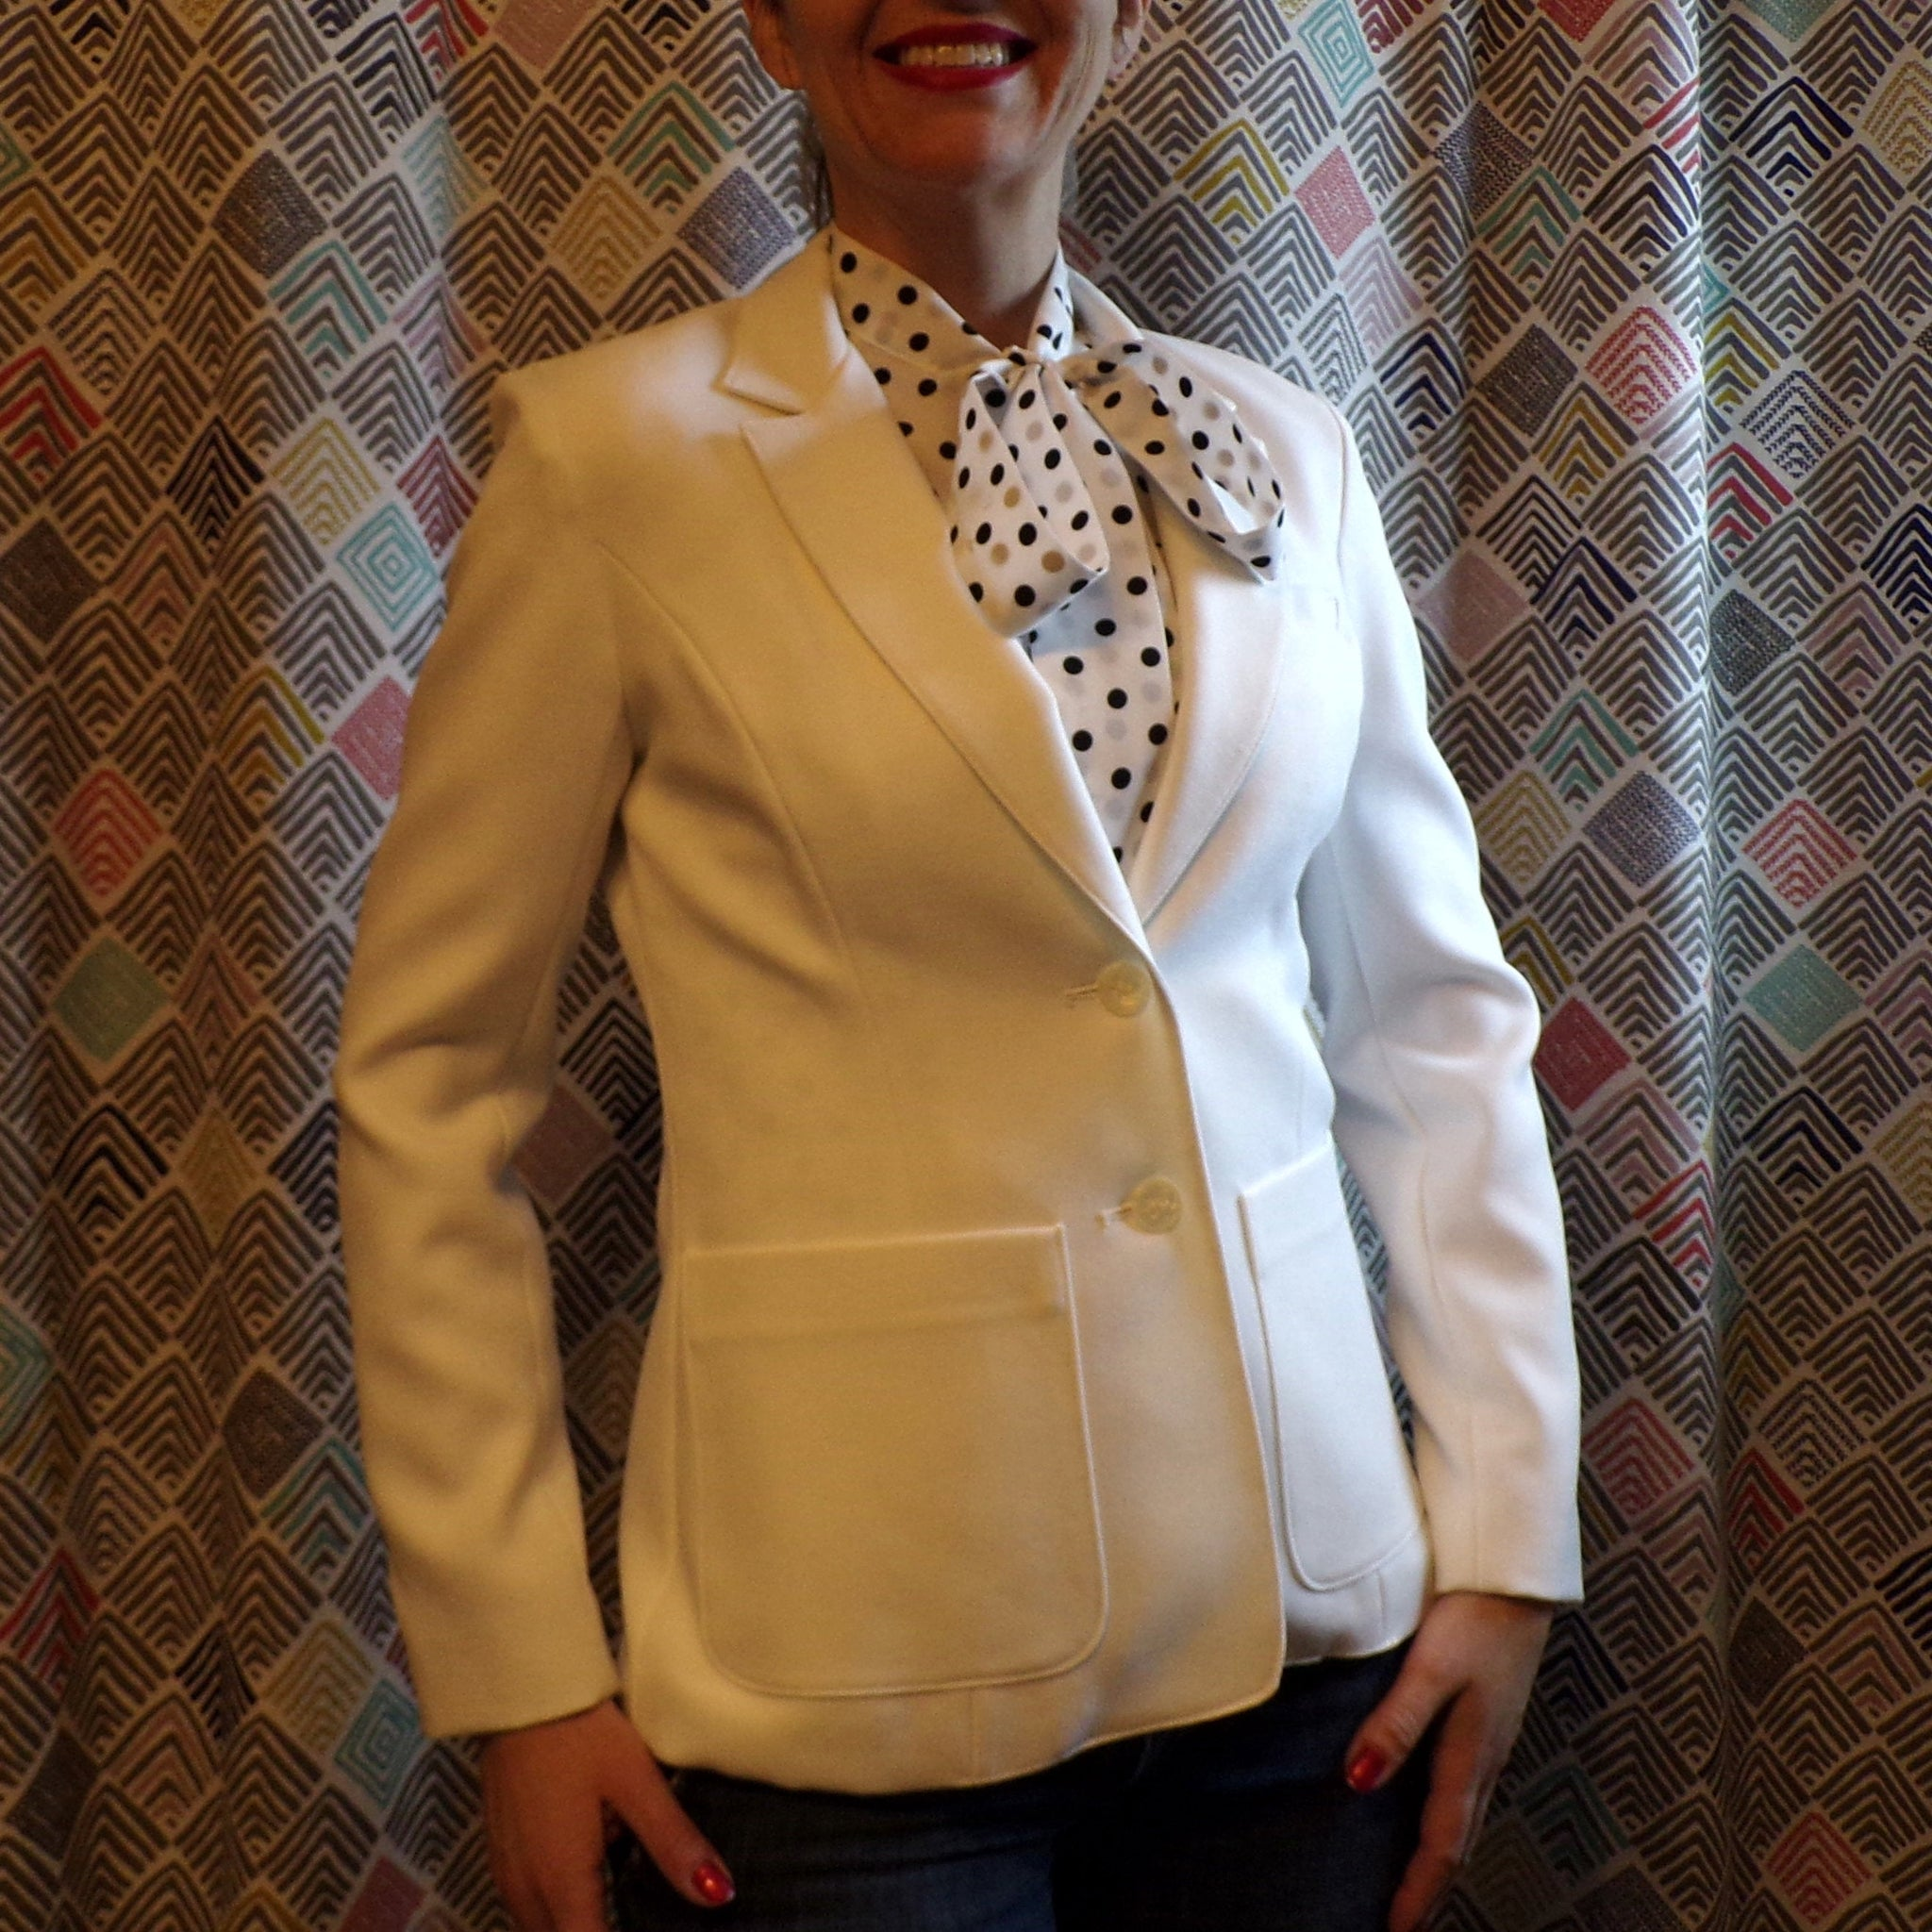 WHITE 1970's CAREER BLAZER 2-button 70's jacket S (G8)